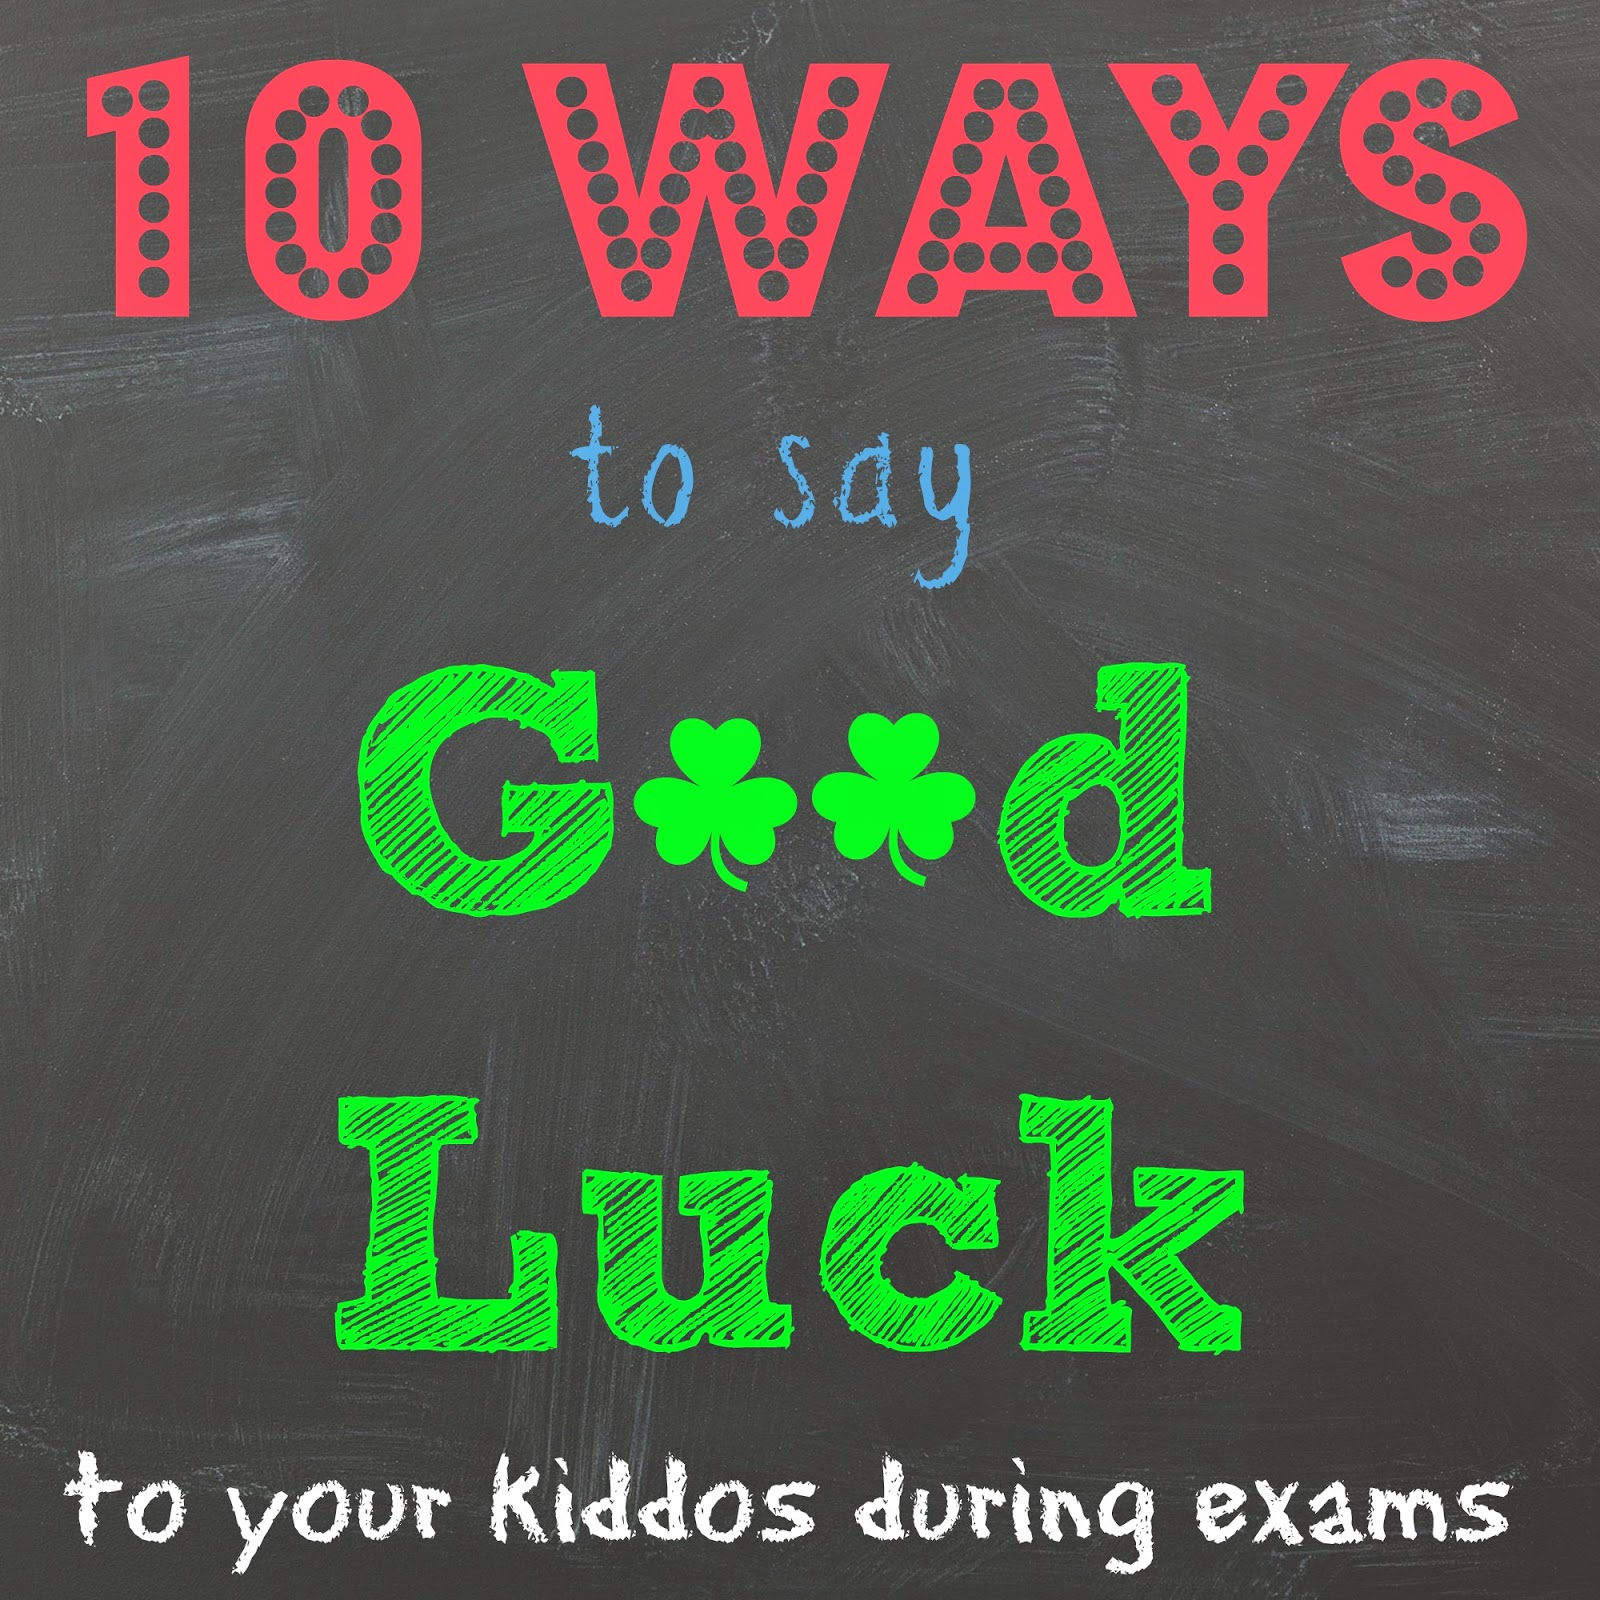 Good Luck On Your Exam Quotes: While I'm Waiting...: 10 Ways To Say Good Luck To Kiddos